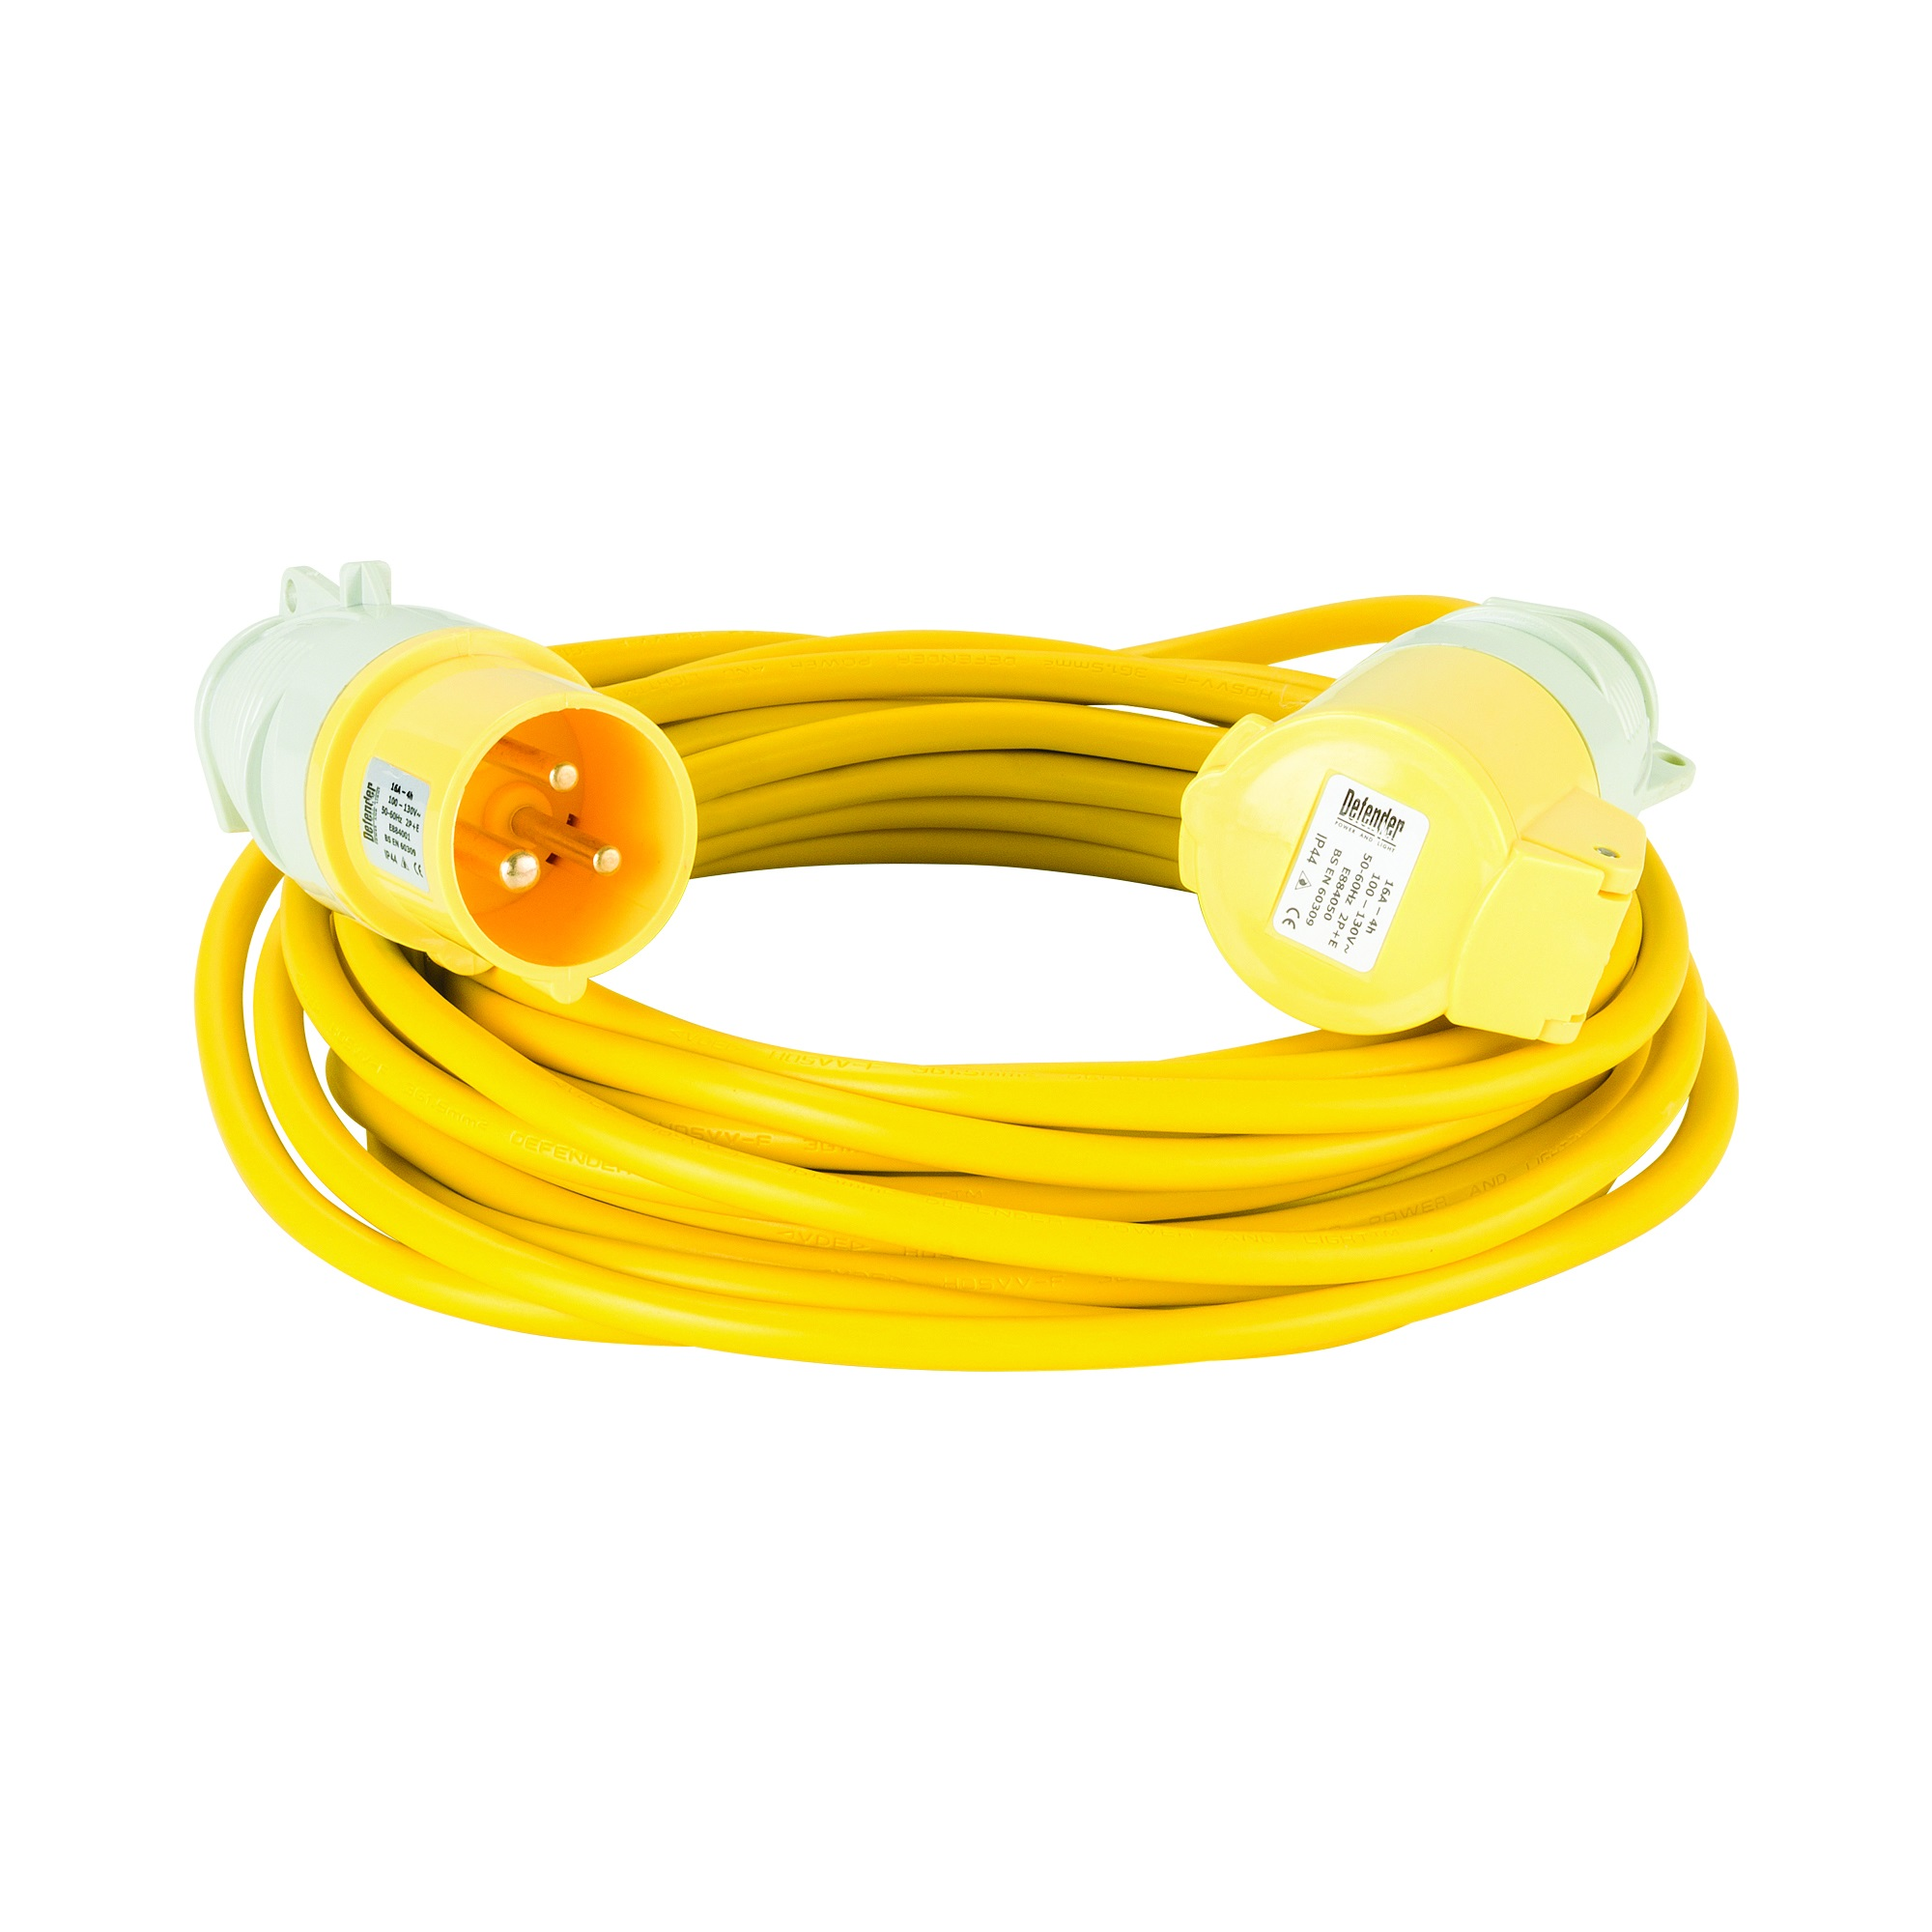 Yellow Defender 10M 1.5mm 16A arctic grade 110V extension lead cable with Defender plug and coupler, on a white background